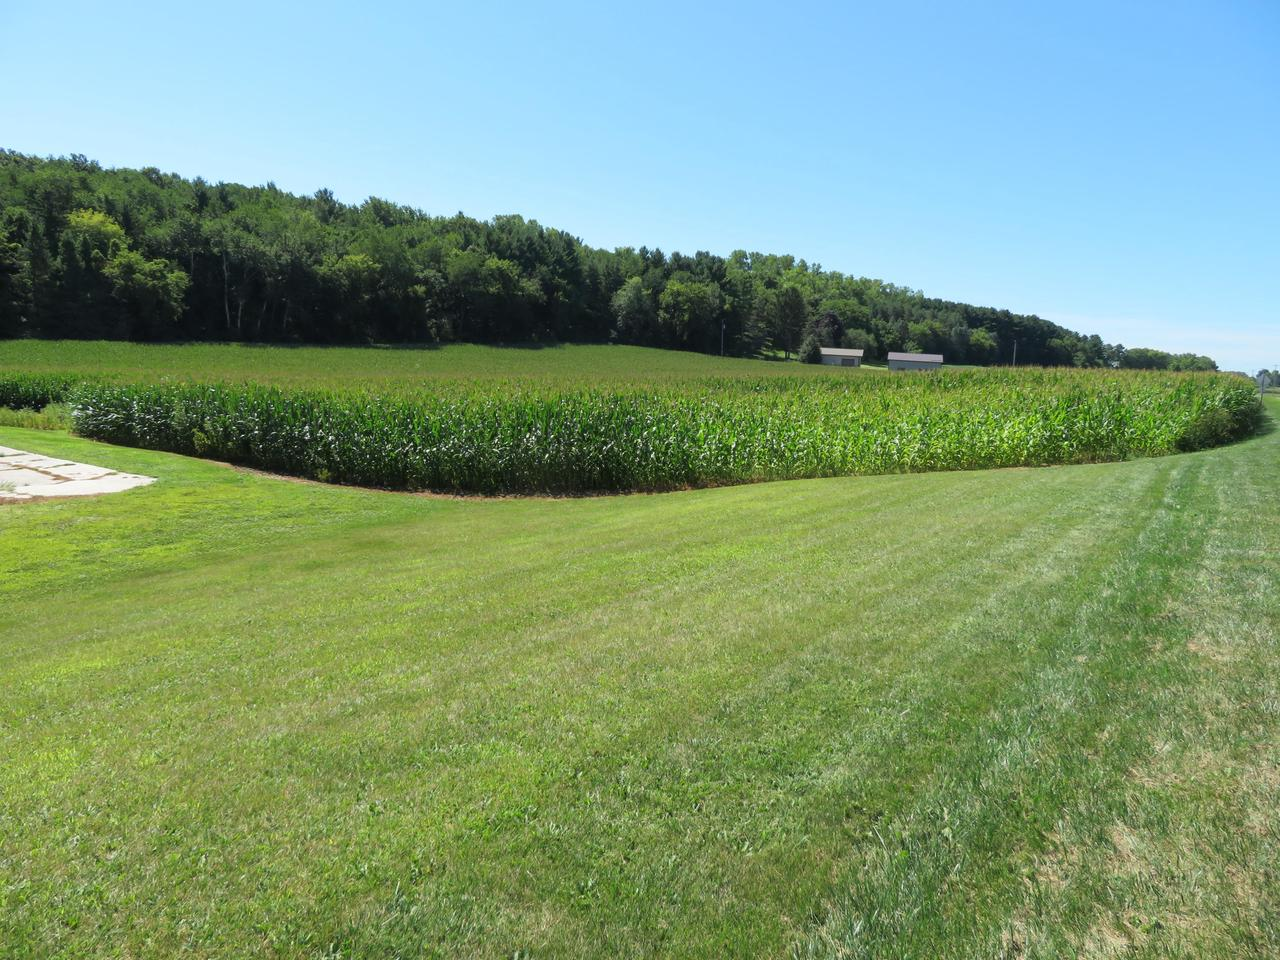 Begin or expand your farm operation w/124 acres of farmland & buildings from a former hog operation. Land includes 103 prime tillable acres & 17 acres Ag Forest land. Former 700 head farrow to feeder operation has multiple buildings including former gestation/farrowing barns sized 36x80; 50x96; 50x75; 42x80; 40x115; 42x120 and 32x90 plus a storage/machine shed 52x96. There is plenty of land to build your home and settle down on the farm. Seller will entertain options for purchasing buildings & 5 acres only for $200,000; the 104 acres tillable land only for $624,000; or 15 wooded acres only for $120,000. No land contracts. Seller is willing to close the certified earthen pits if a buyer has no need of them